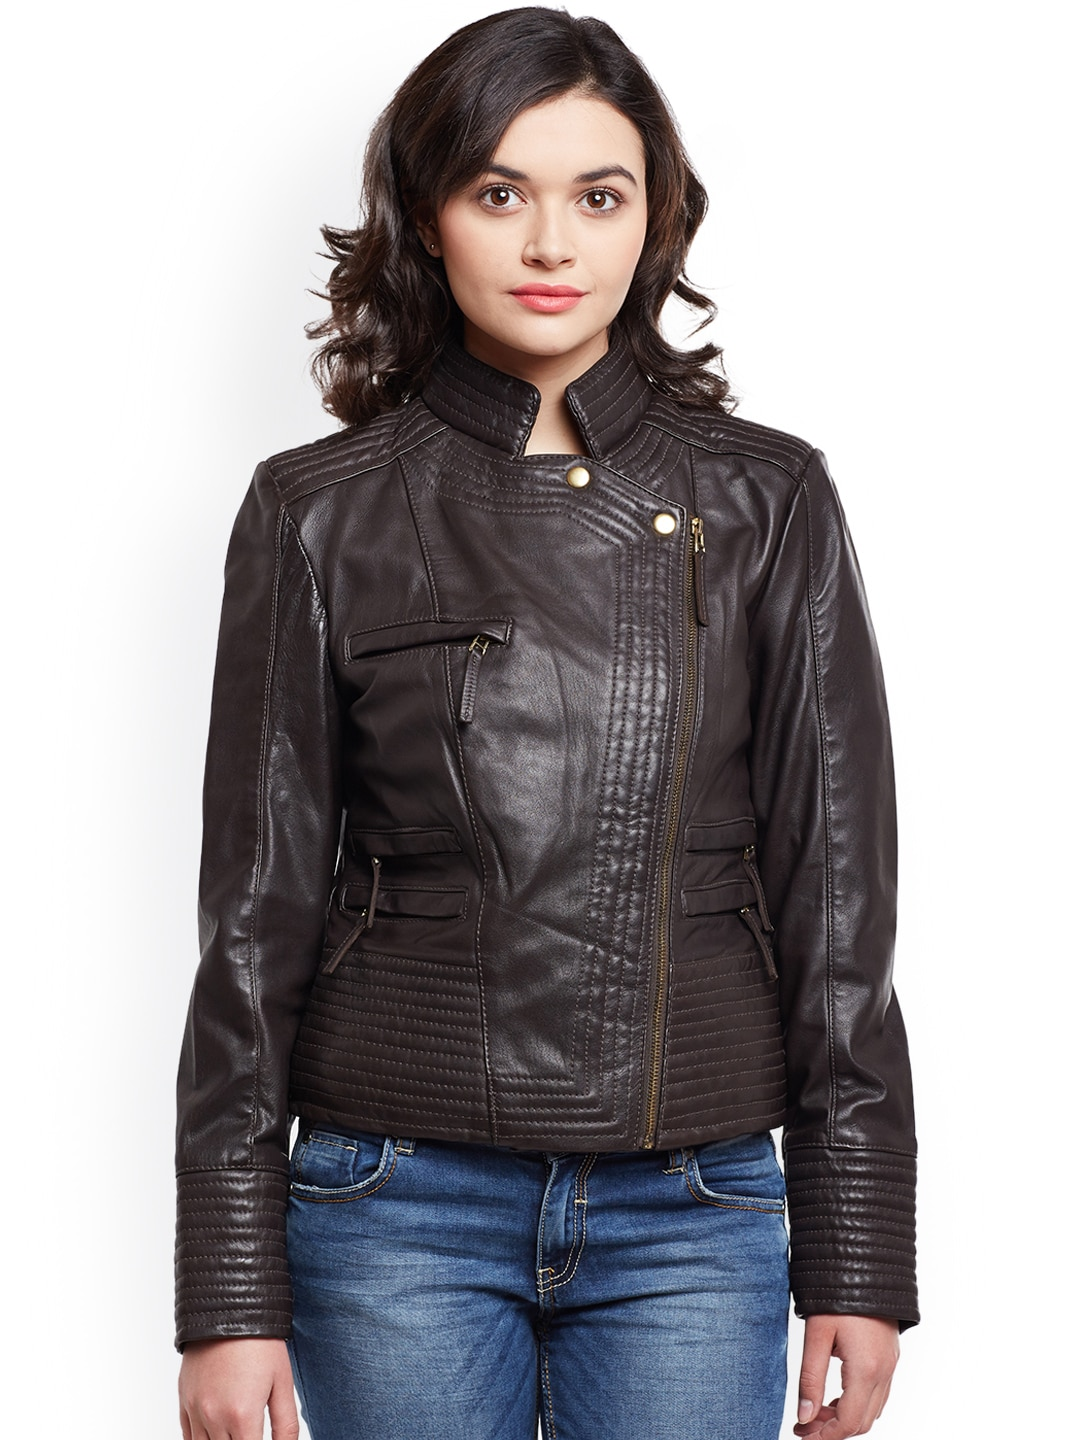 New Design Leather Jackets | Leather Jackets Women Buy Leather Jackets Women Online In India